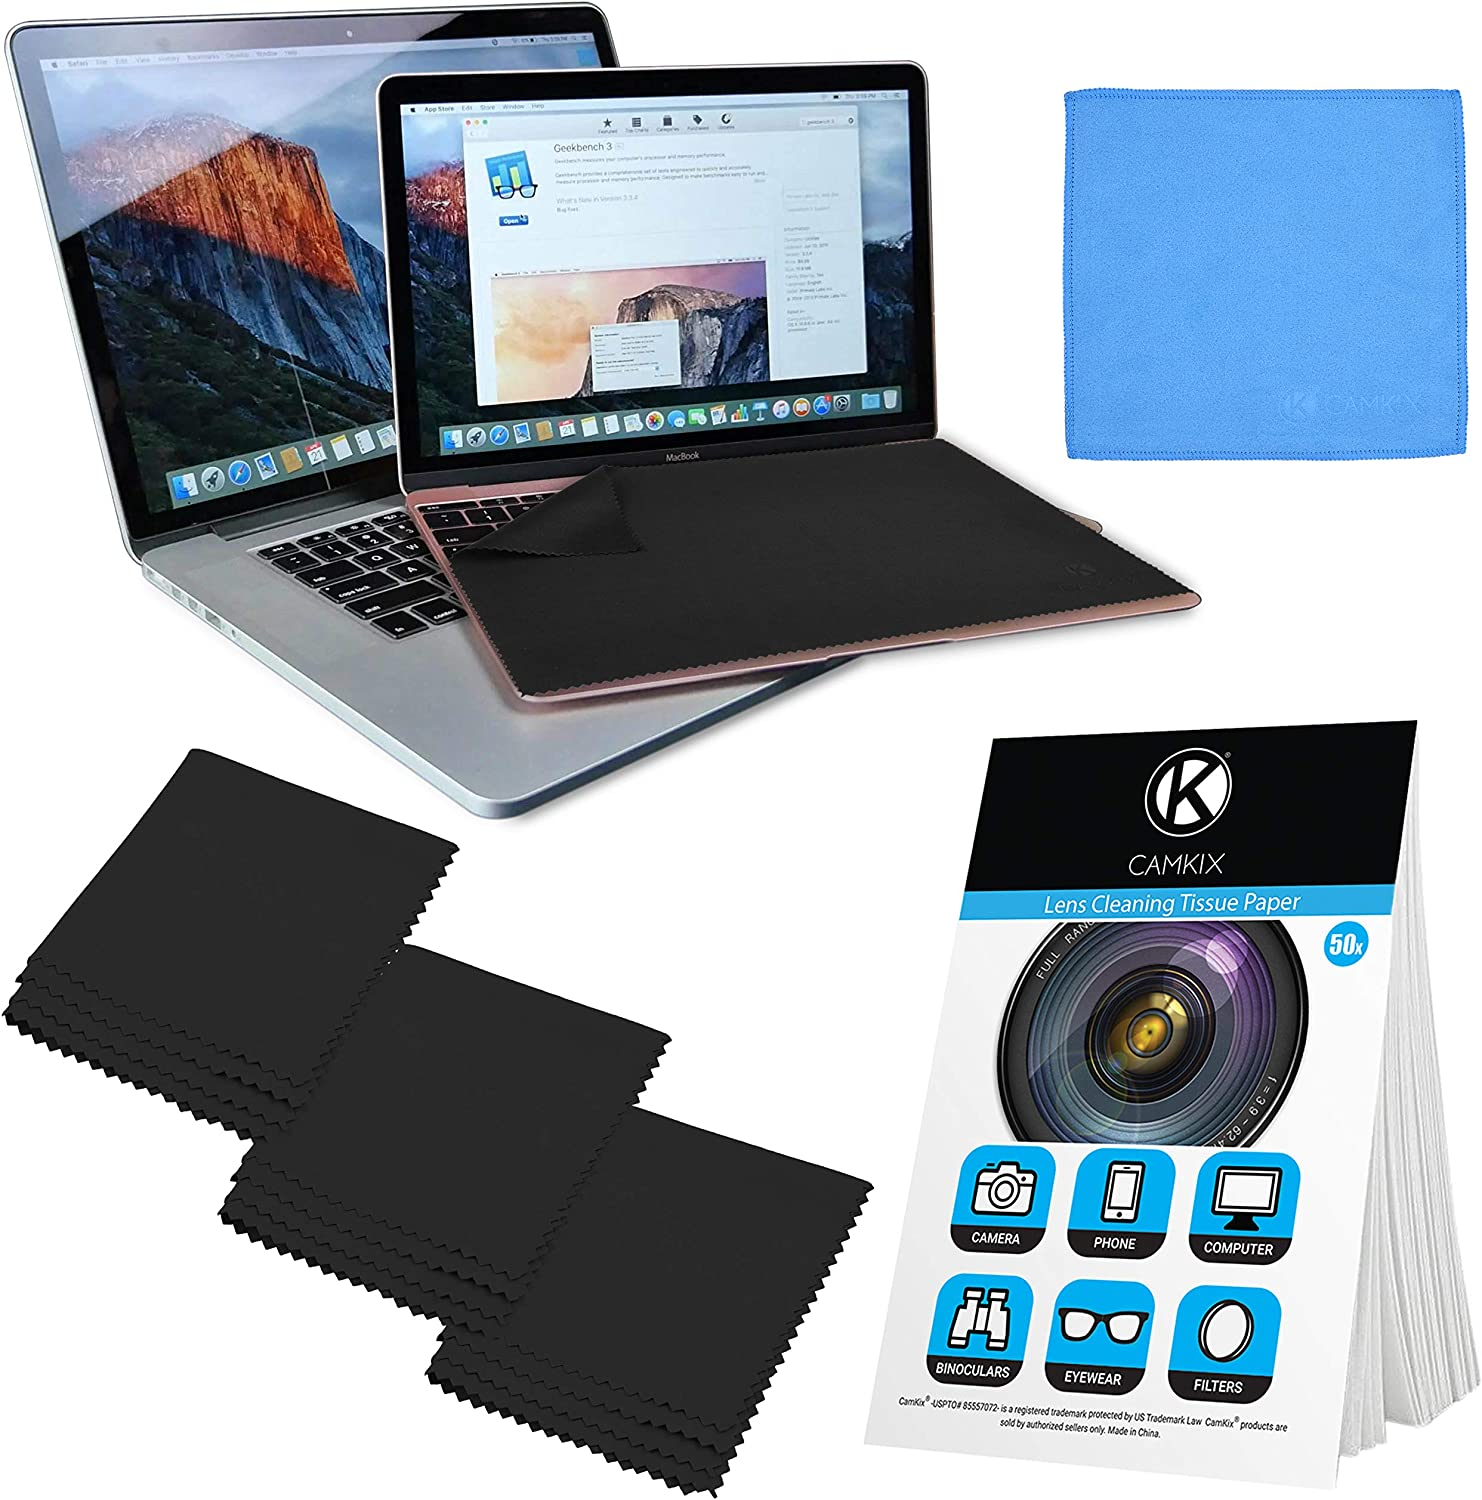 """Camkix Microfiber Cover Cloth Cleaning Set - Compatible with Apple MacBook Pro (15-16"""") - 4x Keyboard Liner Cloth, 1x Double Sided Cloth and 1 x Lens Cleaning Paper Tissue Booklet"""